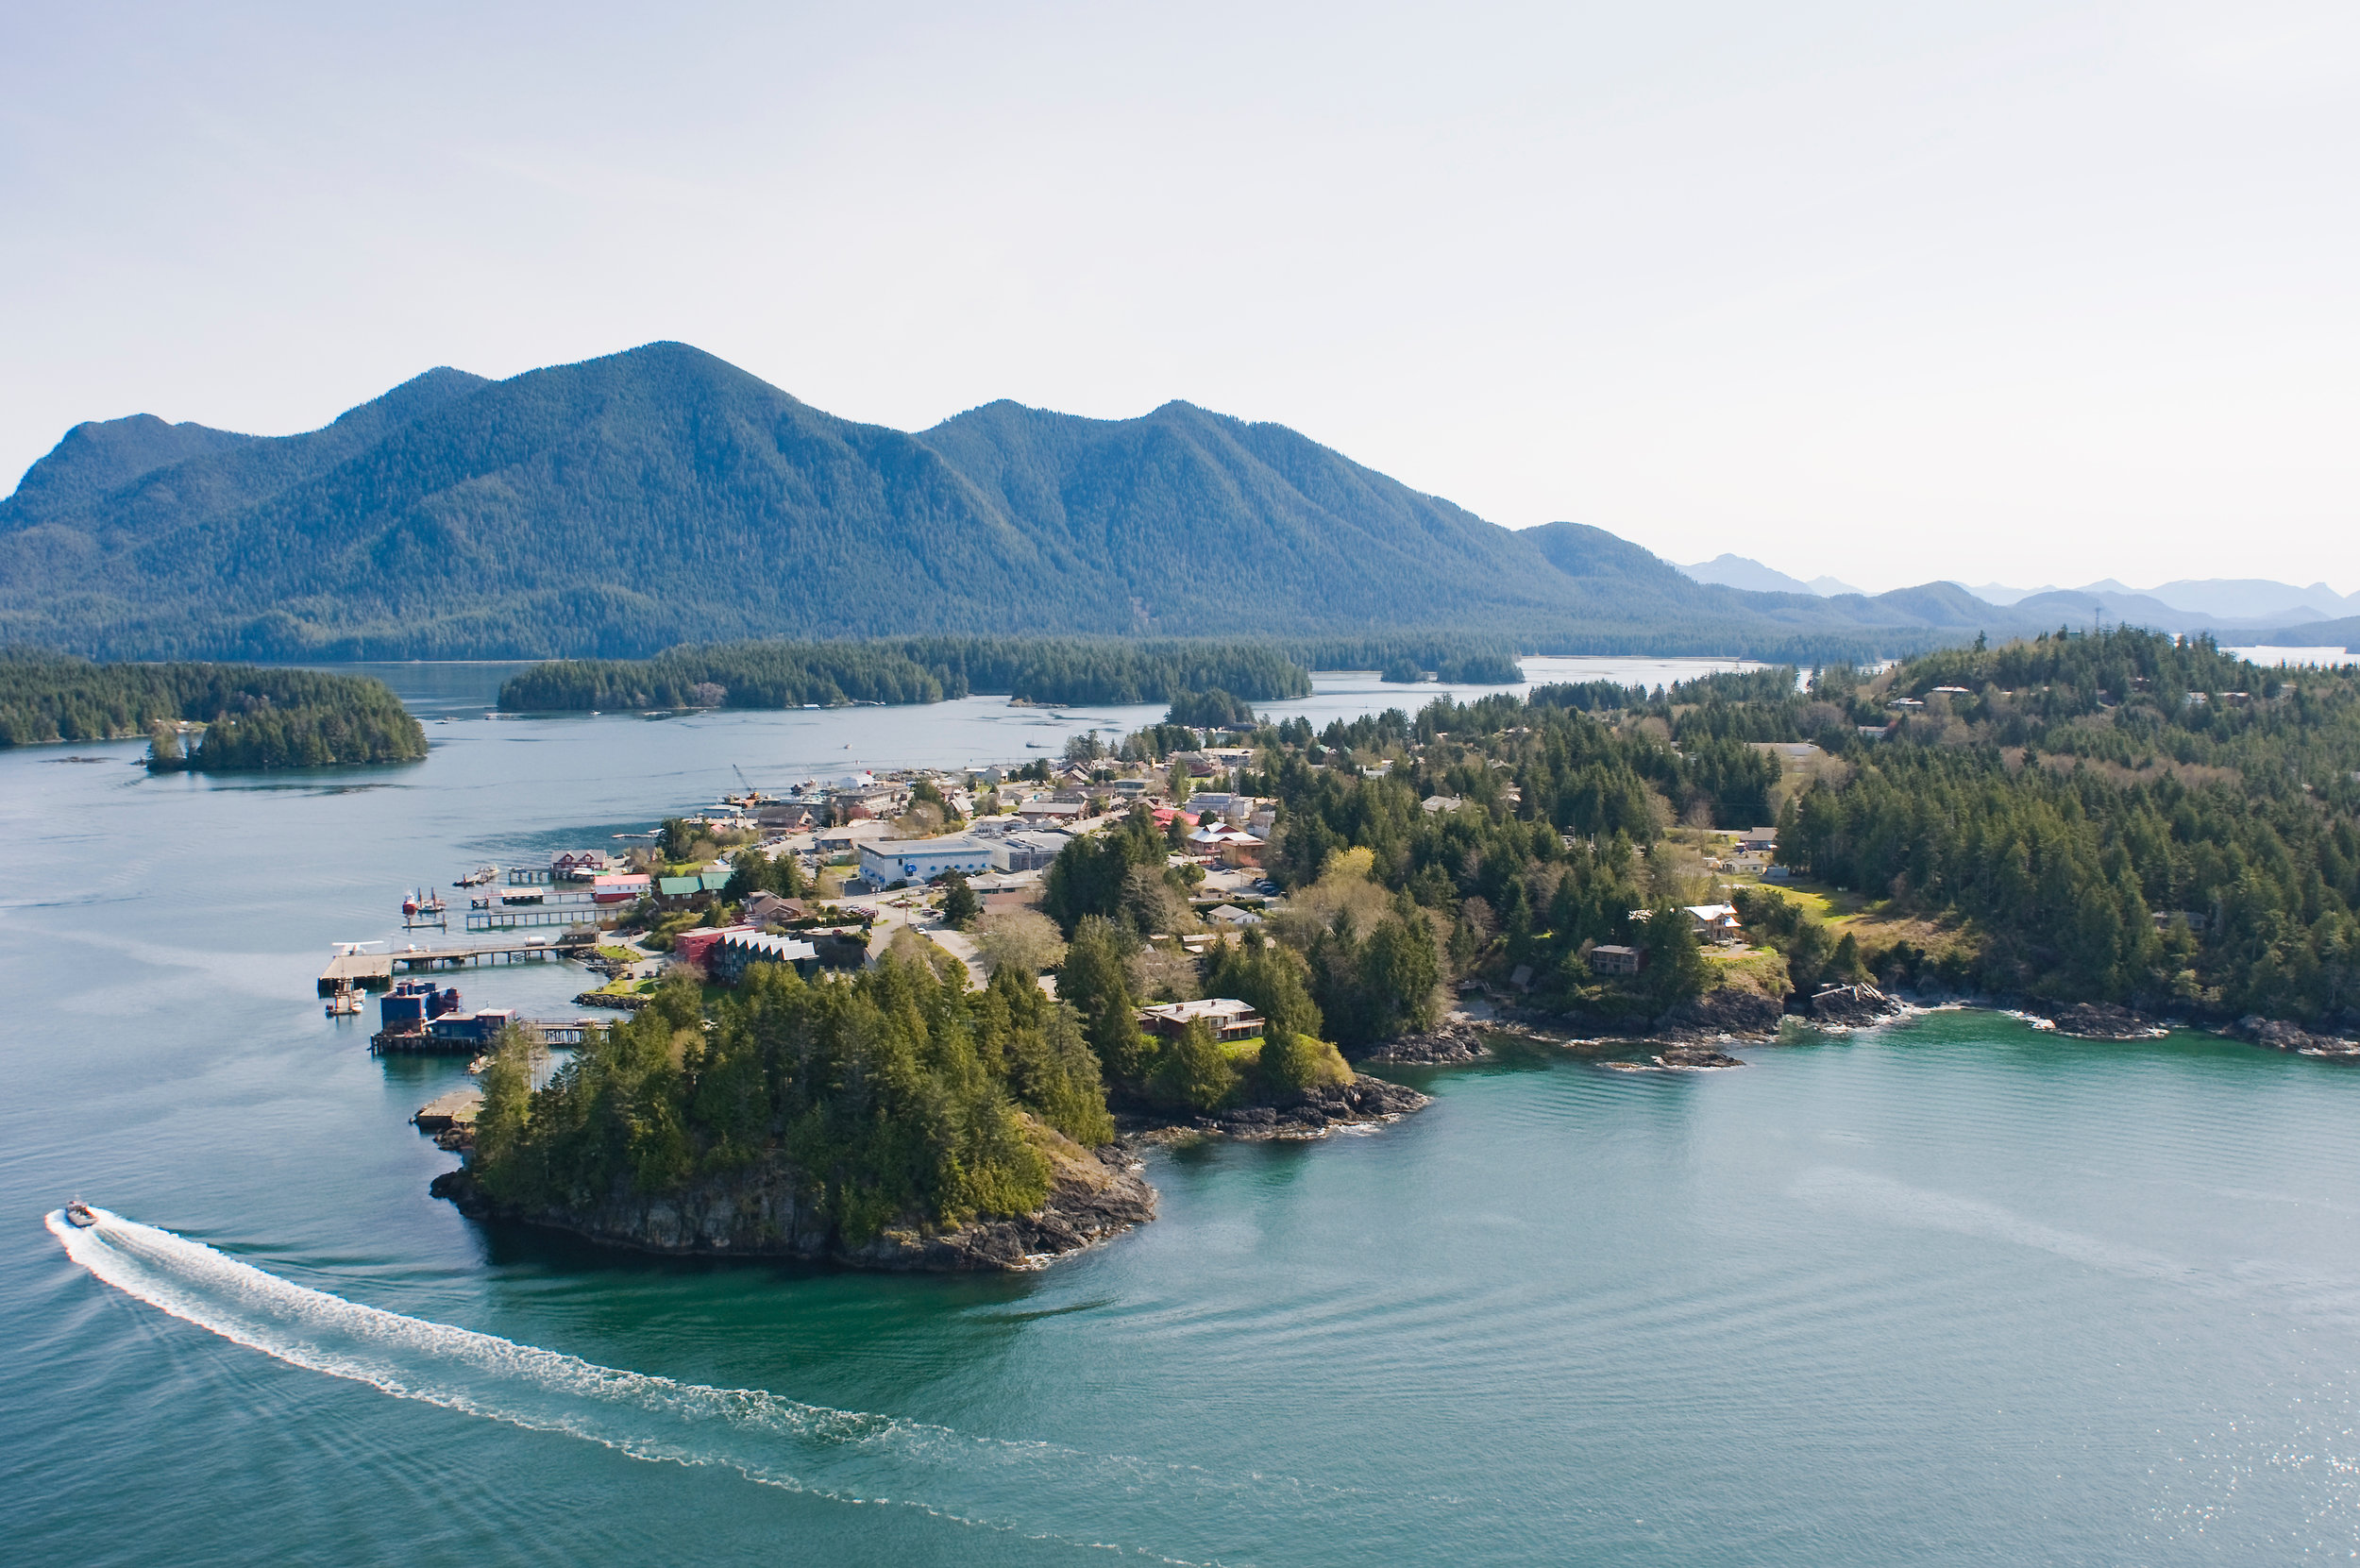 Sea to Sky Tour - Boat up to Hot Springs Cove and fly back to Tofino after your soak in the springs! Boat ride, rainforest hike, relaxing soak in the springs and a 15 minute plane ride back to Tofino. Perfect adventure tour!Tour Duration: 5 hoursDeparture Times: 9:00am, 11:00am & 12:00pmNote: This tour must be booked 24 hours in advance. Call 250.725.2132 for more information.